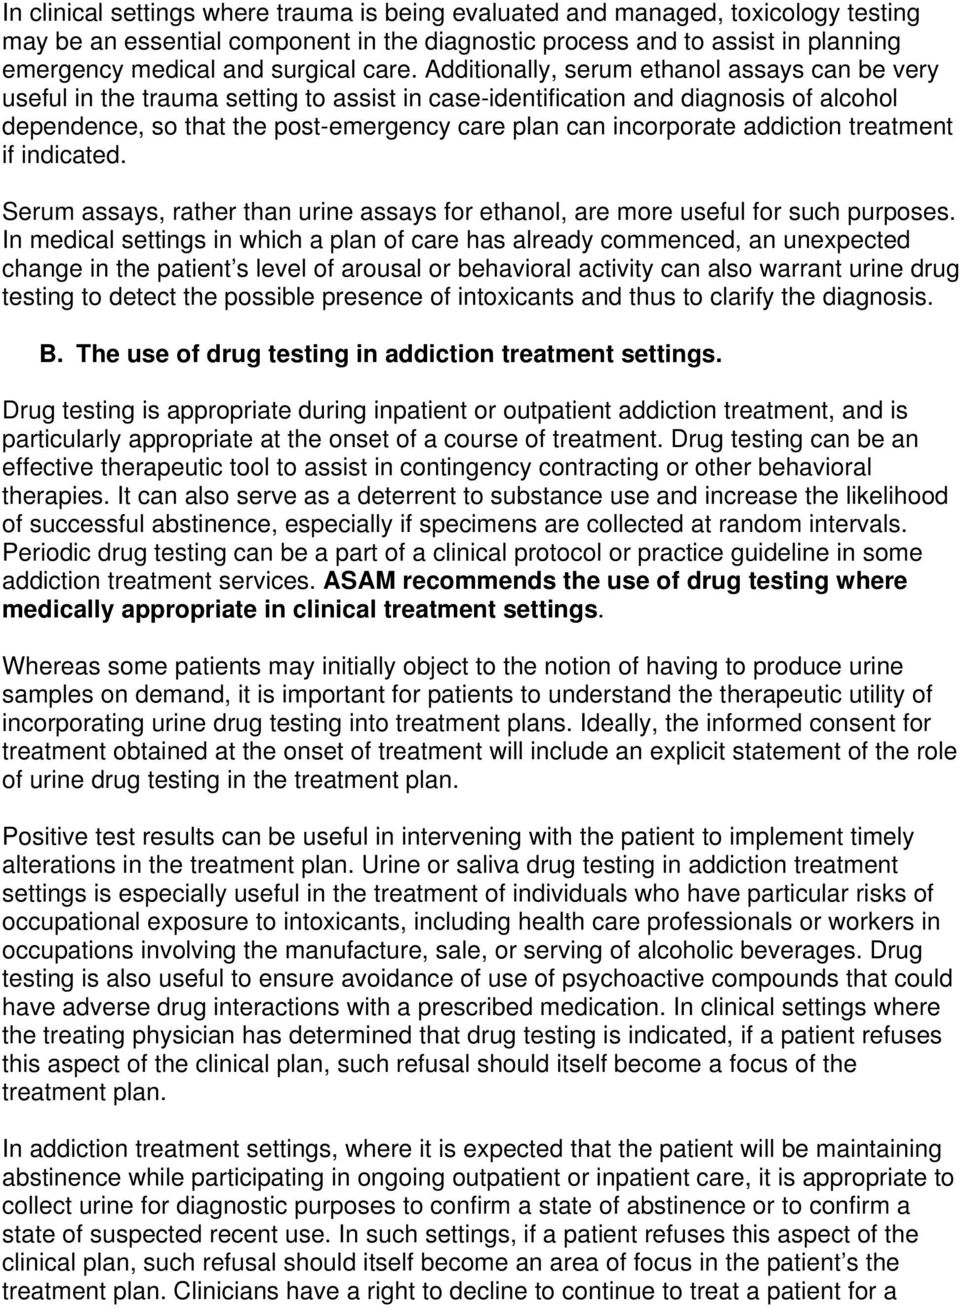 incorporate addiction treatment if indicated. Serum assays, rather than urine assays for ethanol, are more useful for such purposes.